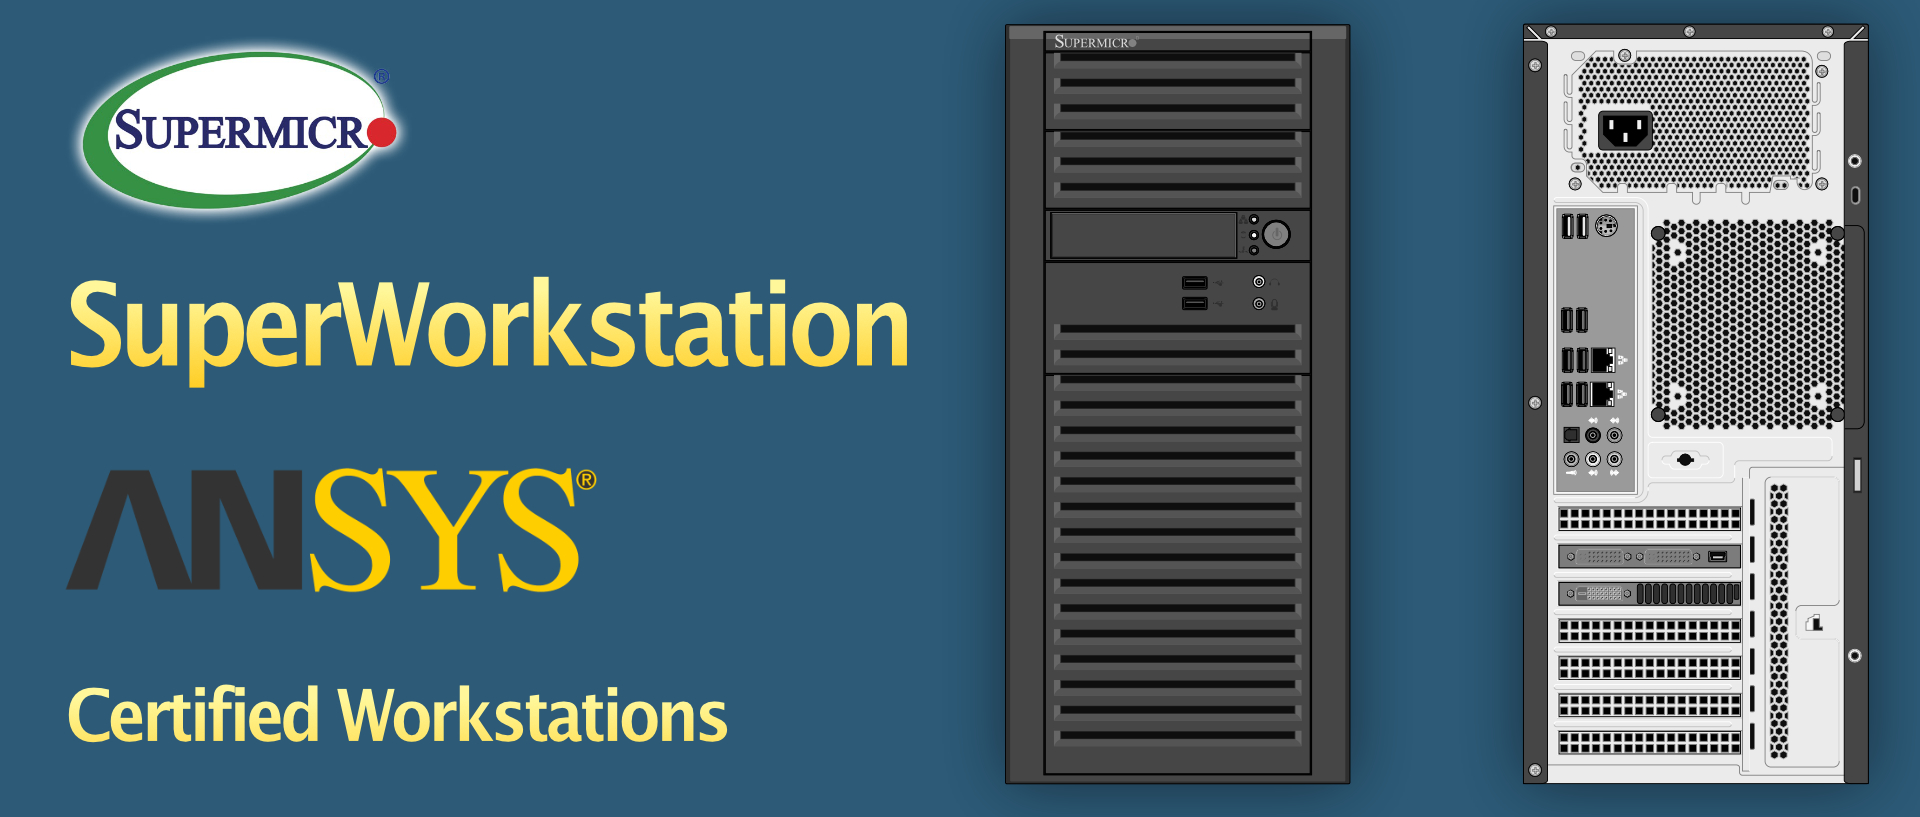 ANSYS workstations